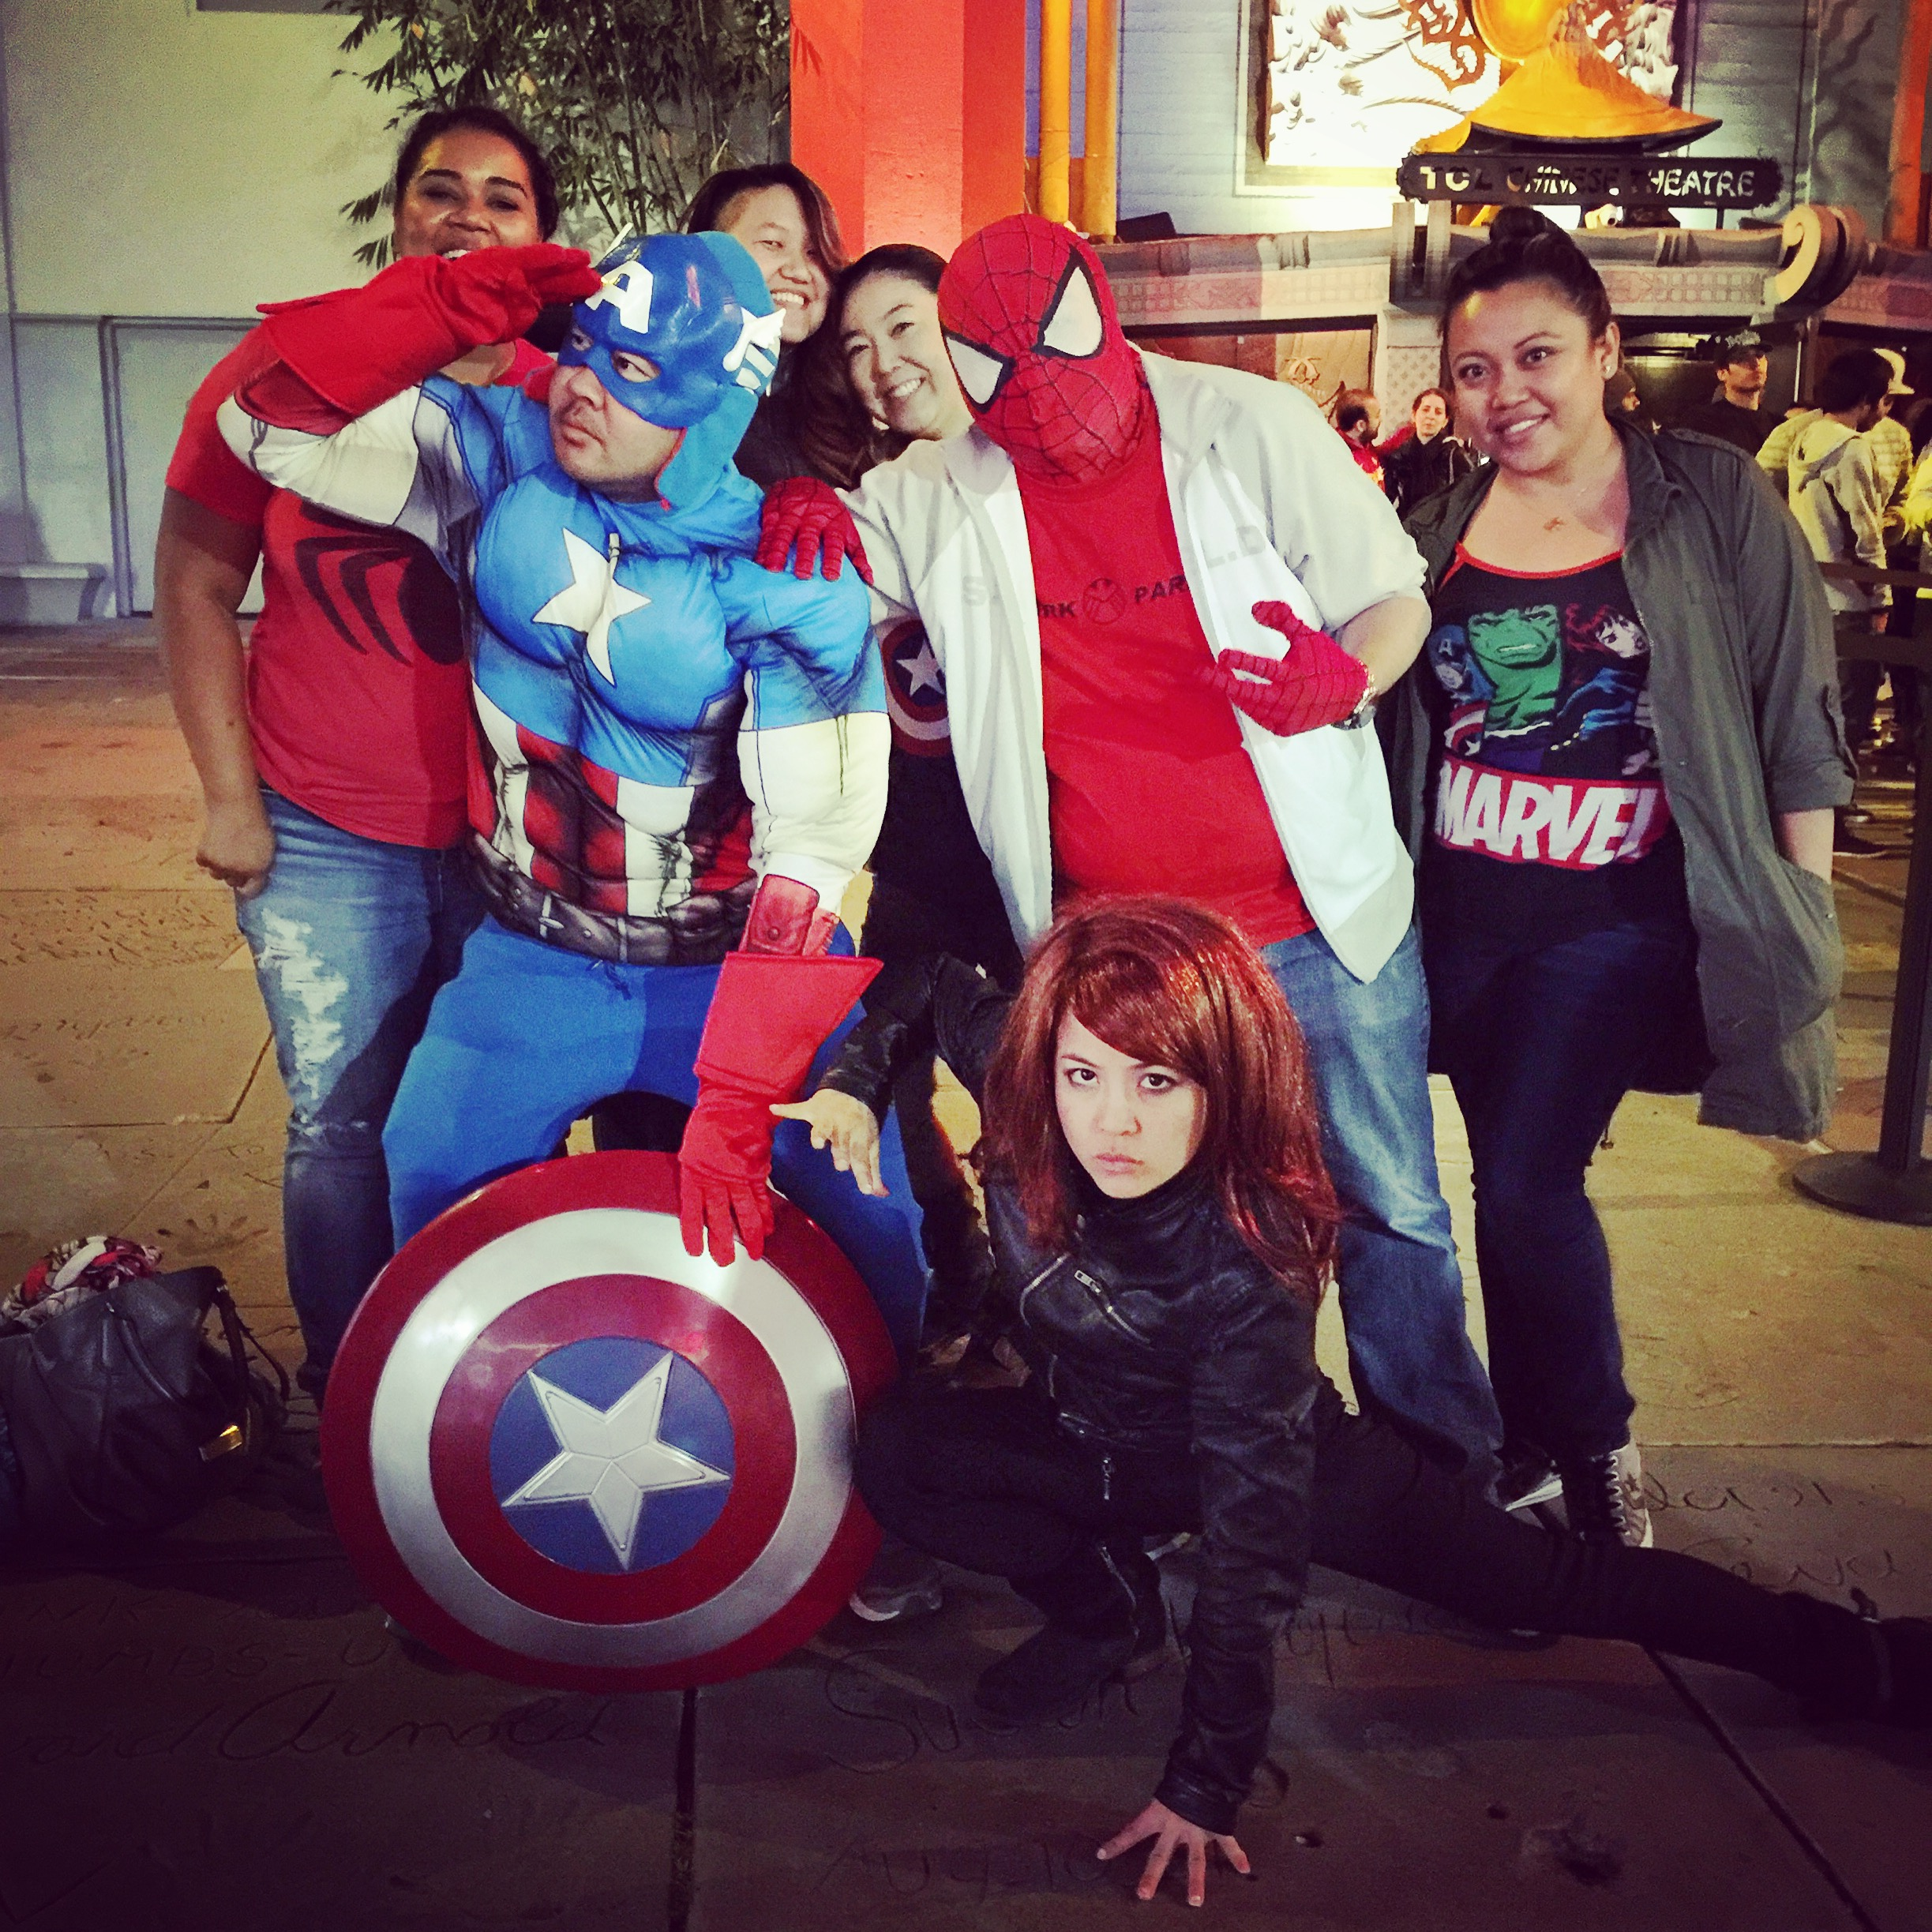 Captain Asian America, Yellow Widow, and Spider Pinoy at the MARVEL Avengers premiere. I rode the gold line like this and nobody batted an eye.